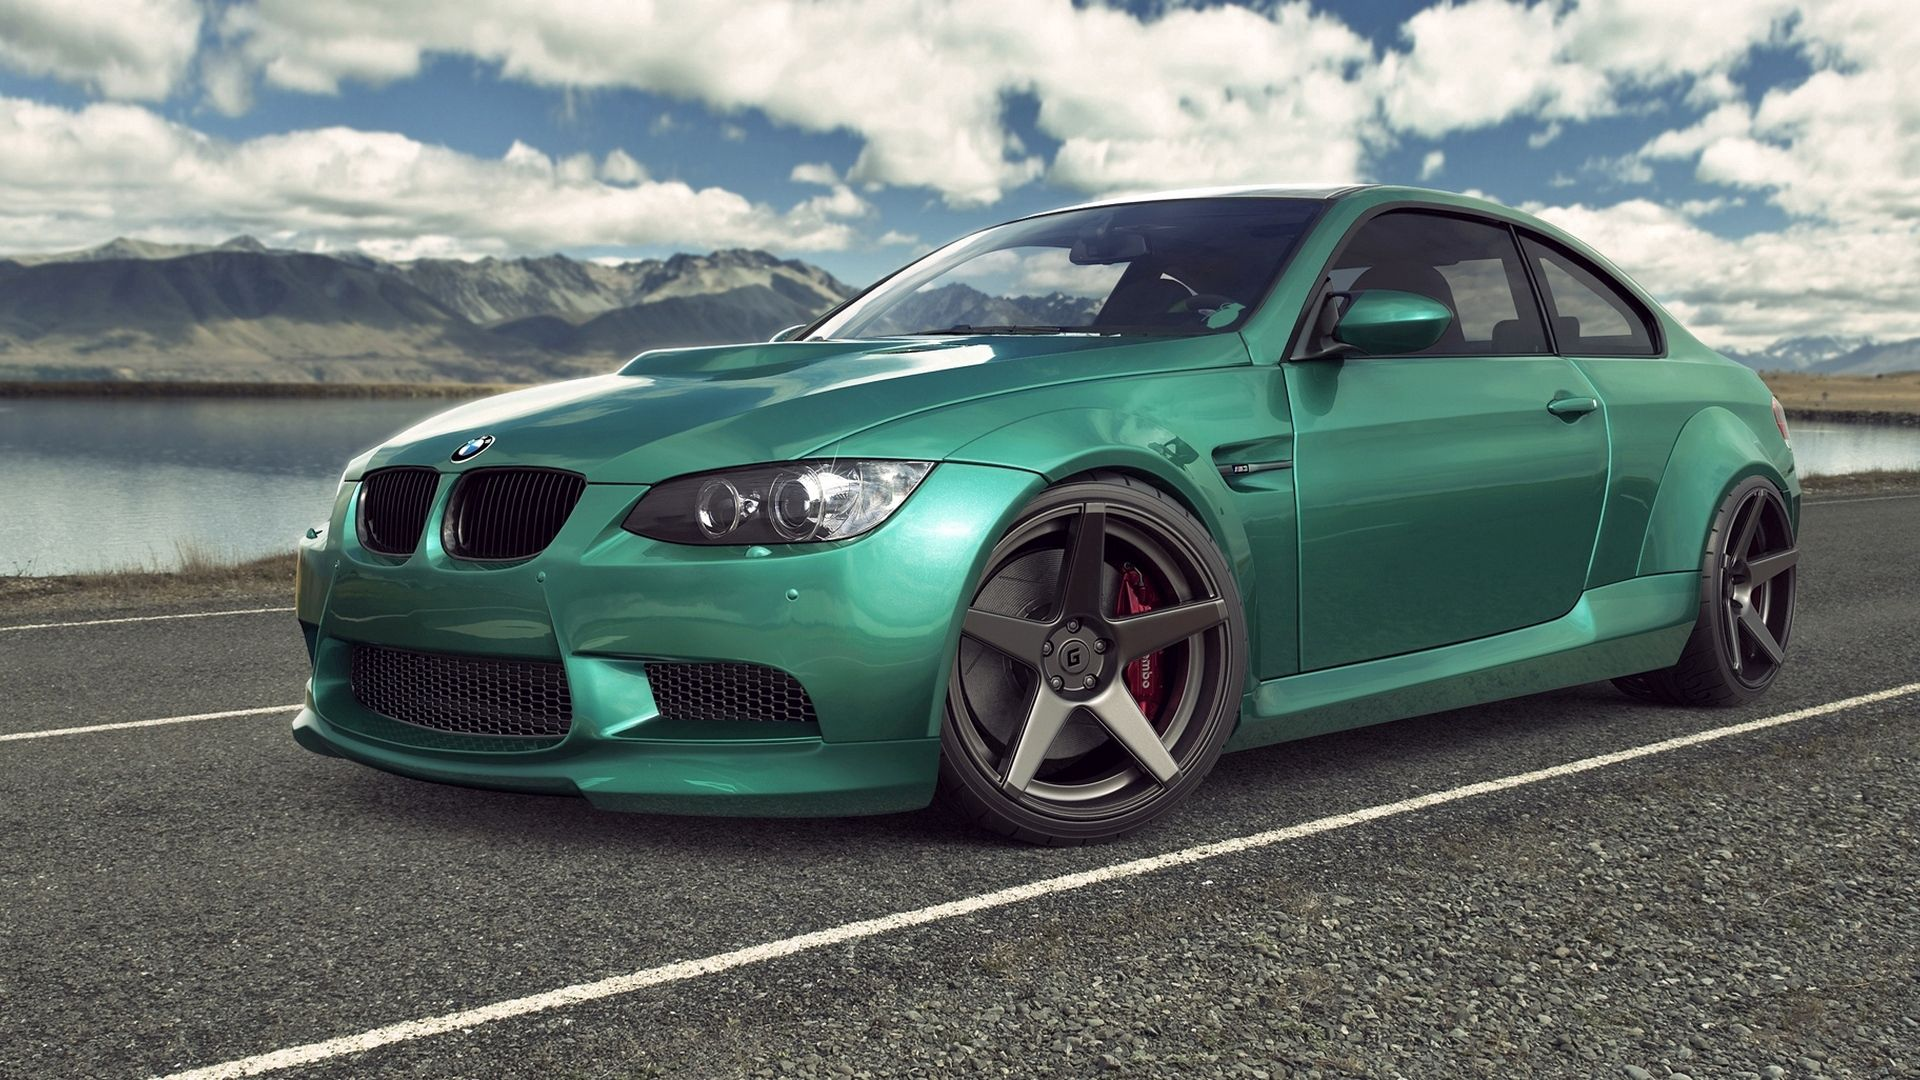 93360 download wallpaper Auto, Sky, Bmw, Clouds, Cars, Road, Car, Machine, M3, E92 screensavers and pictures for free